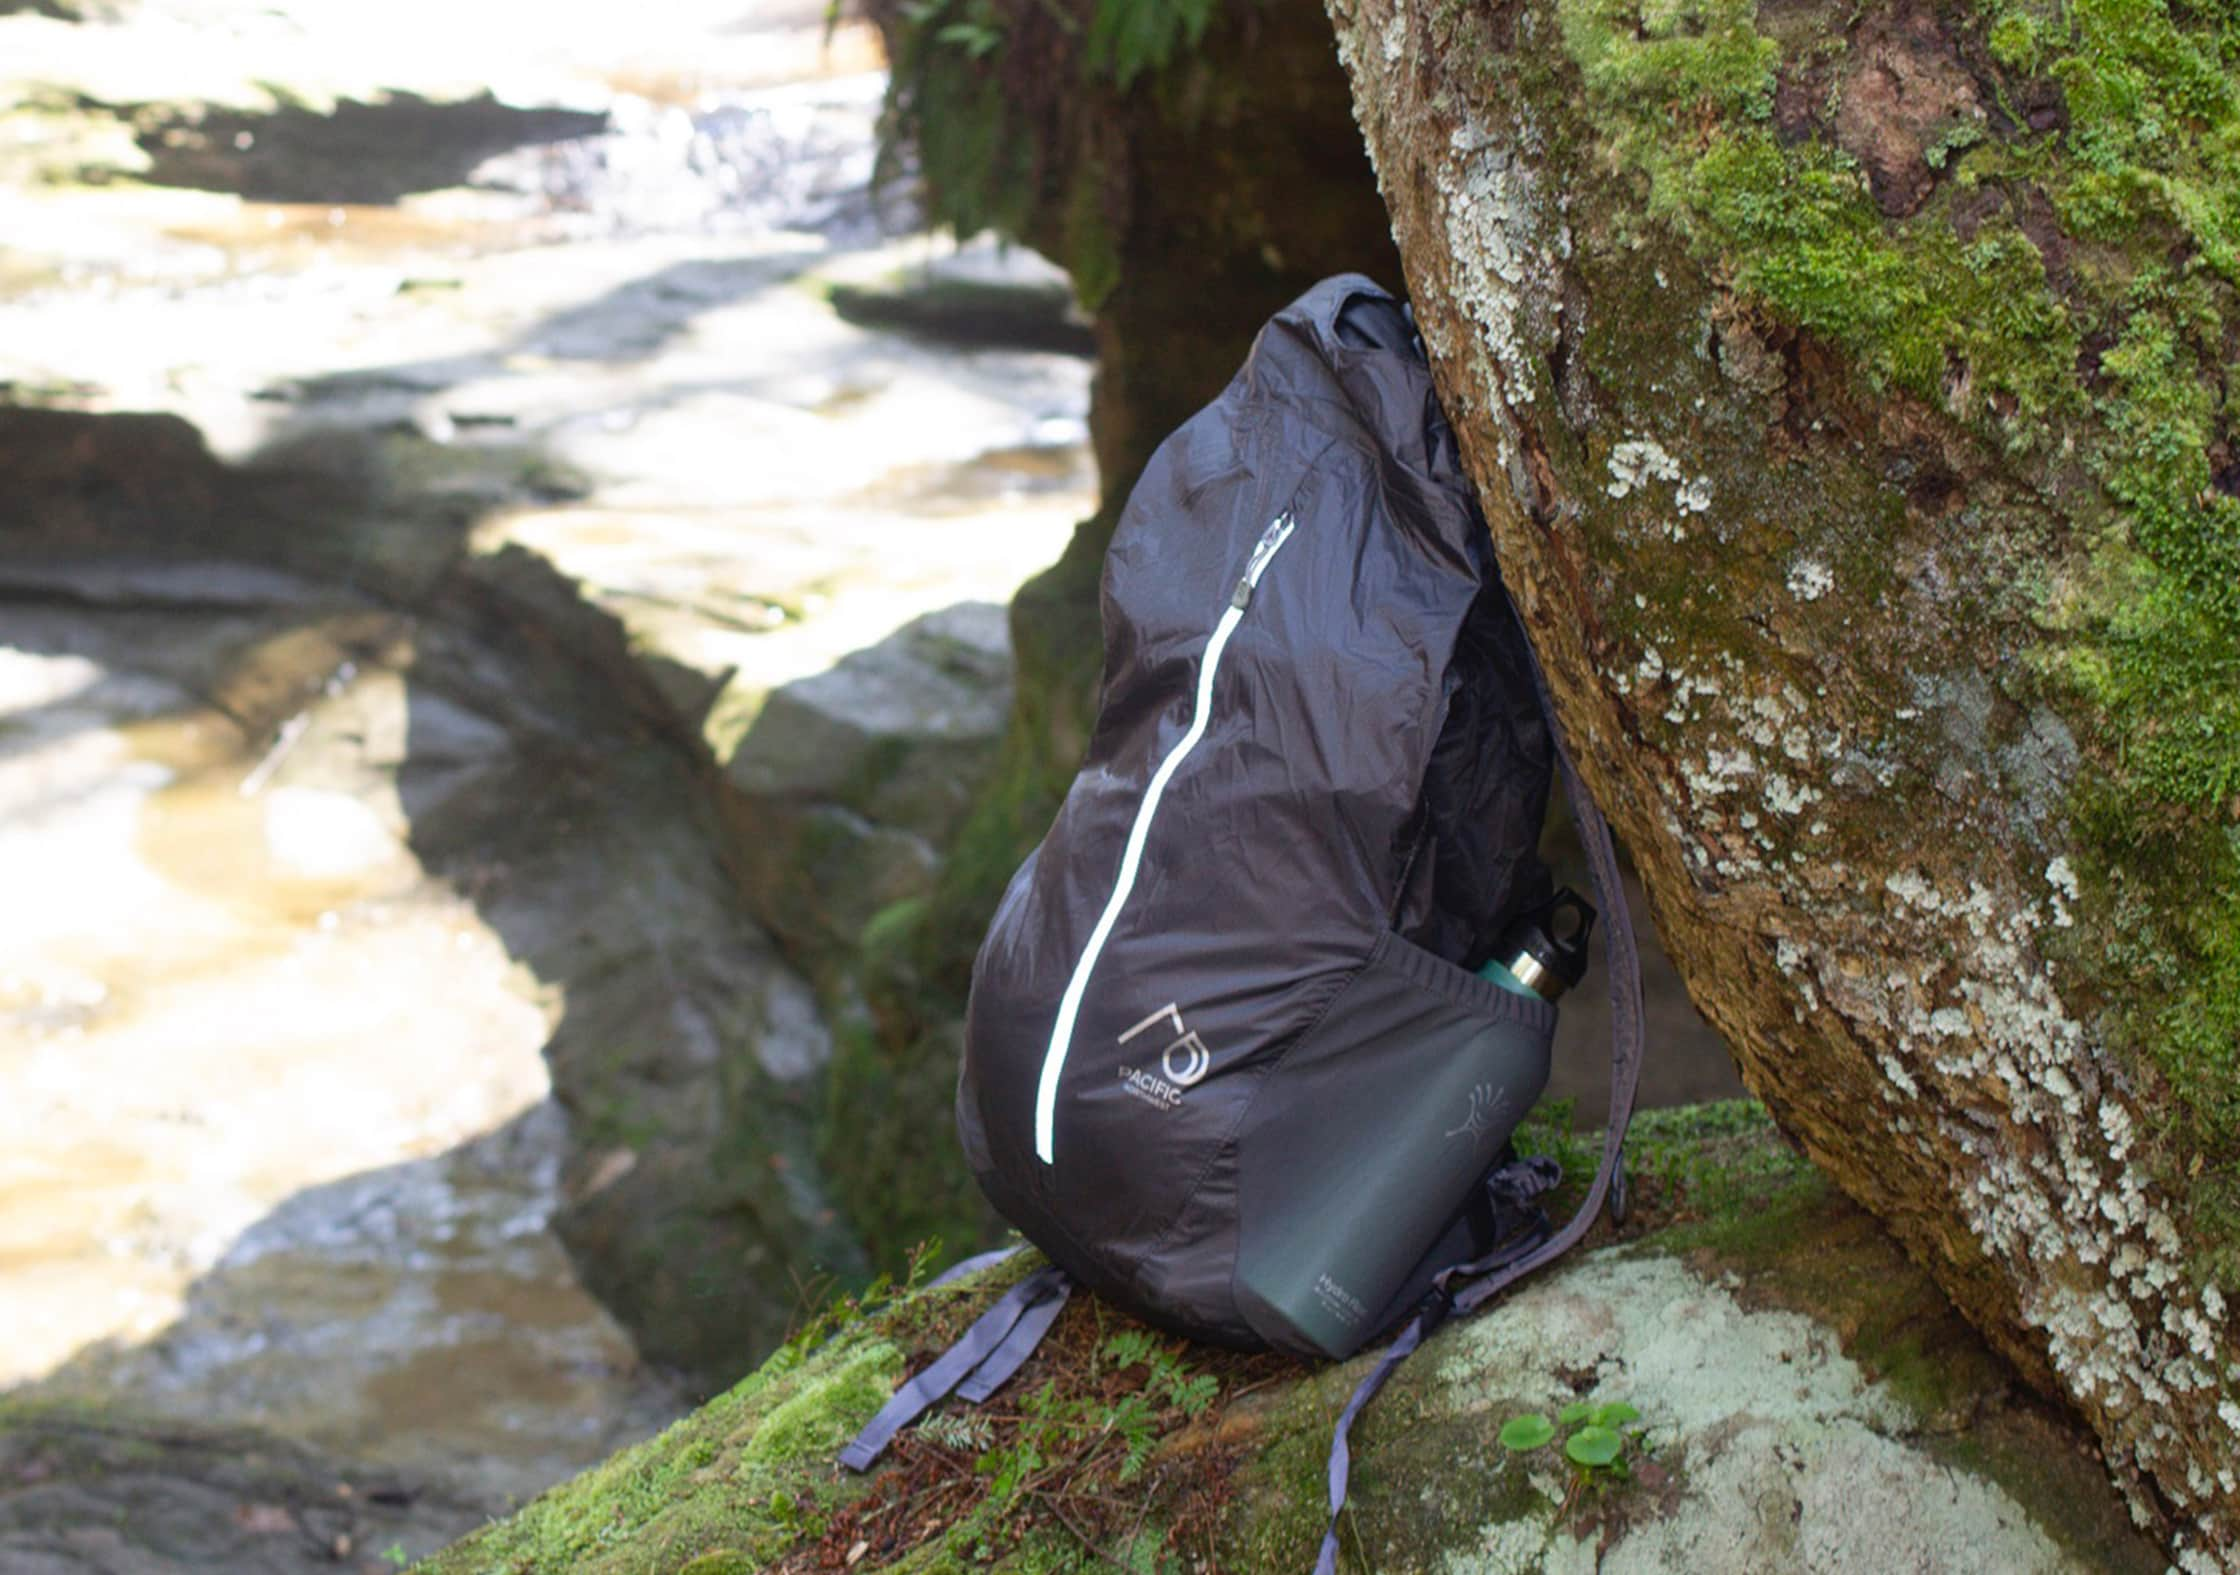 Arkadia Sea To Sky Packable Daypack at Hocking Hills State Park, Ohio